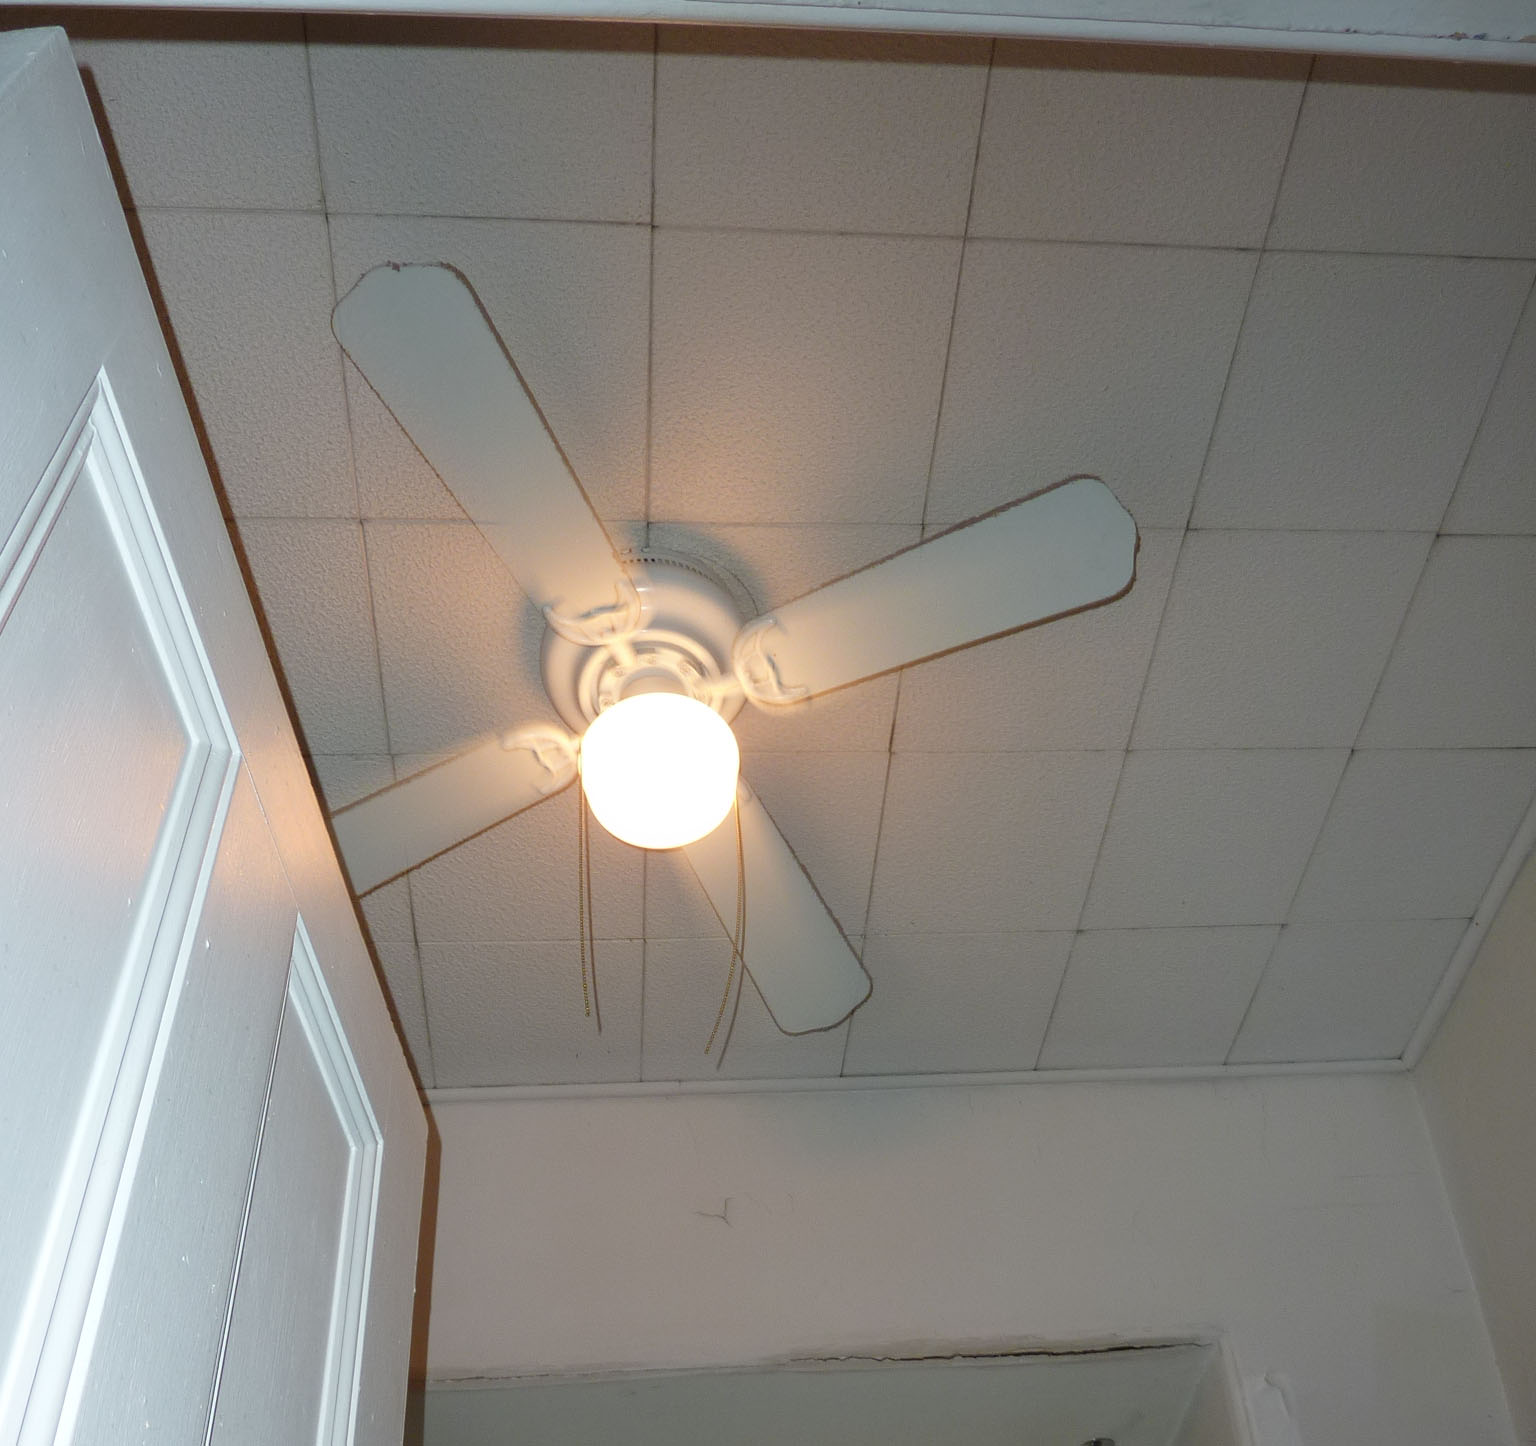 A ceiling fan from the Reuse Center